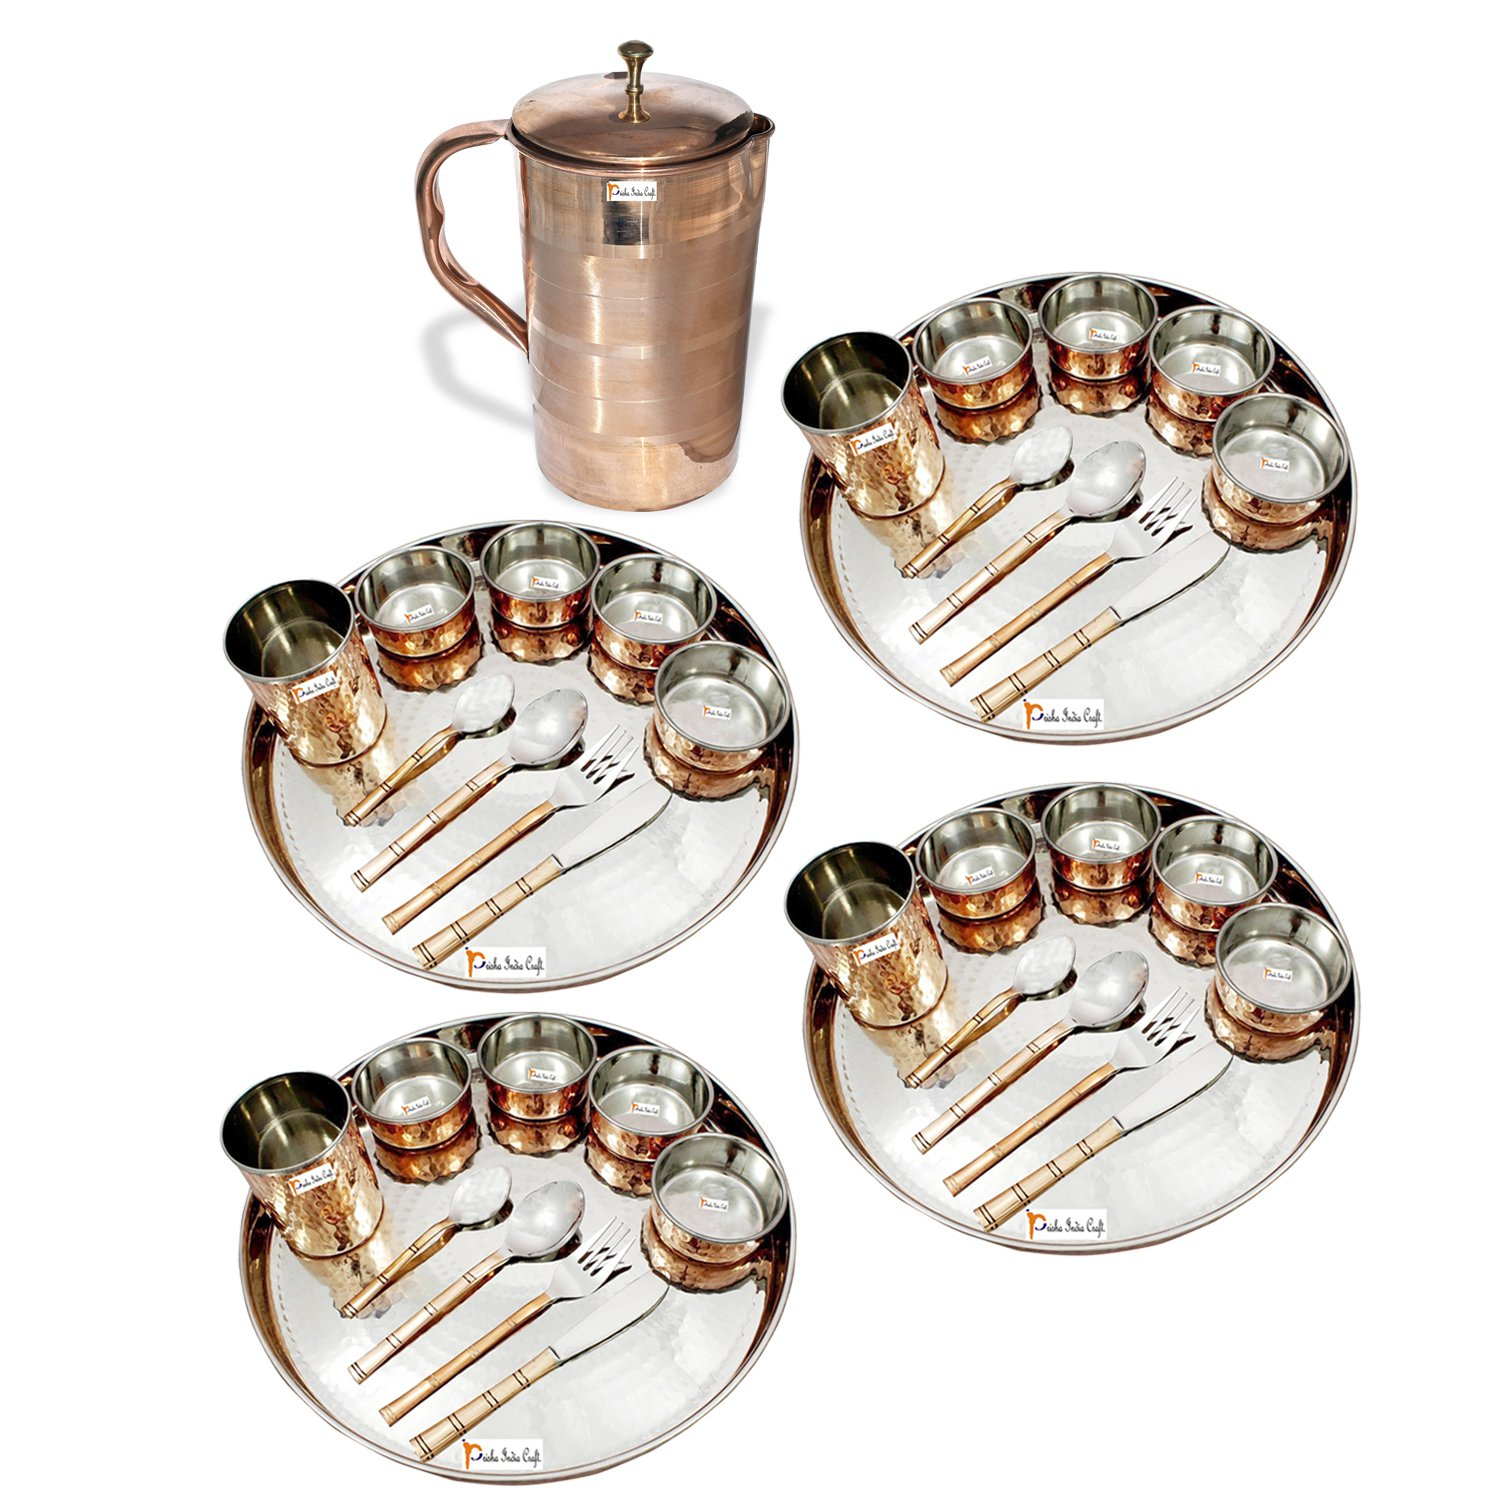 Prisha India Craft ® Set of 4 Dinnerware Traditional Stainless Steel Copper Dinner Set of Thali Plate, Bowls, Glass and Spoons, Dia 13'' With 1 Luxury Style Pure Copper Pitcher Jug - Christmas Gift